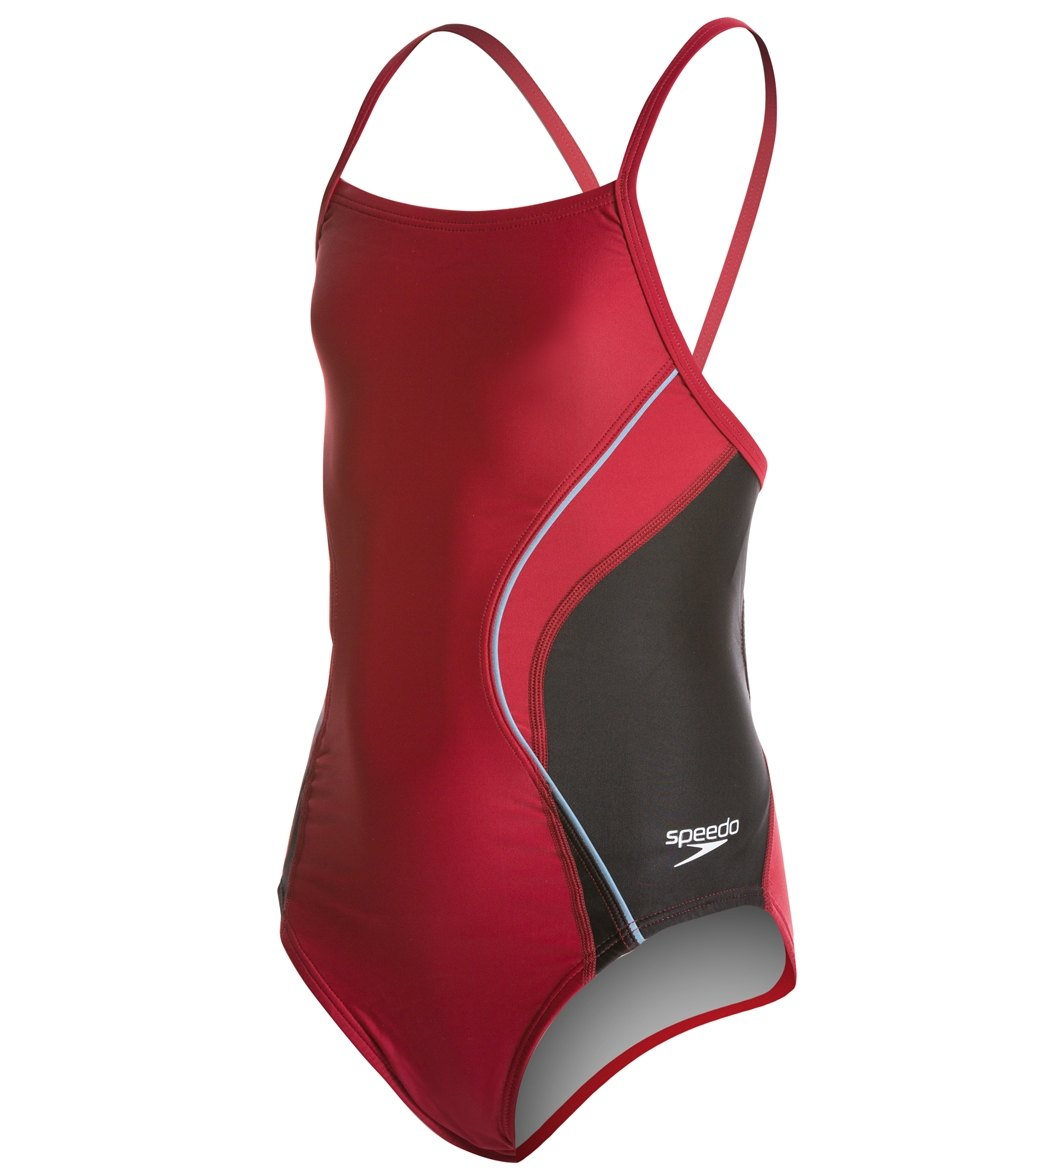 55c0c3a05b Speedo PowerFLEX Eco Revolve Splice Energy Back Youth Swimsuit at  SwimOutlet.com - Free Shipping